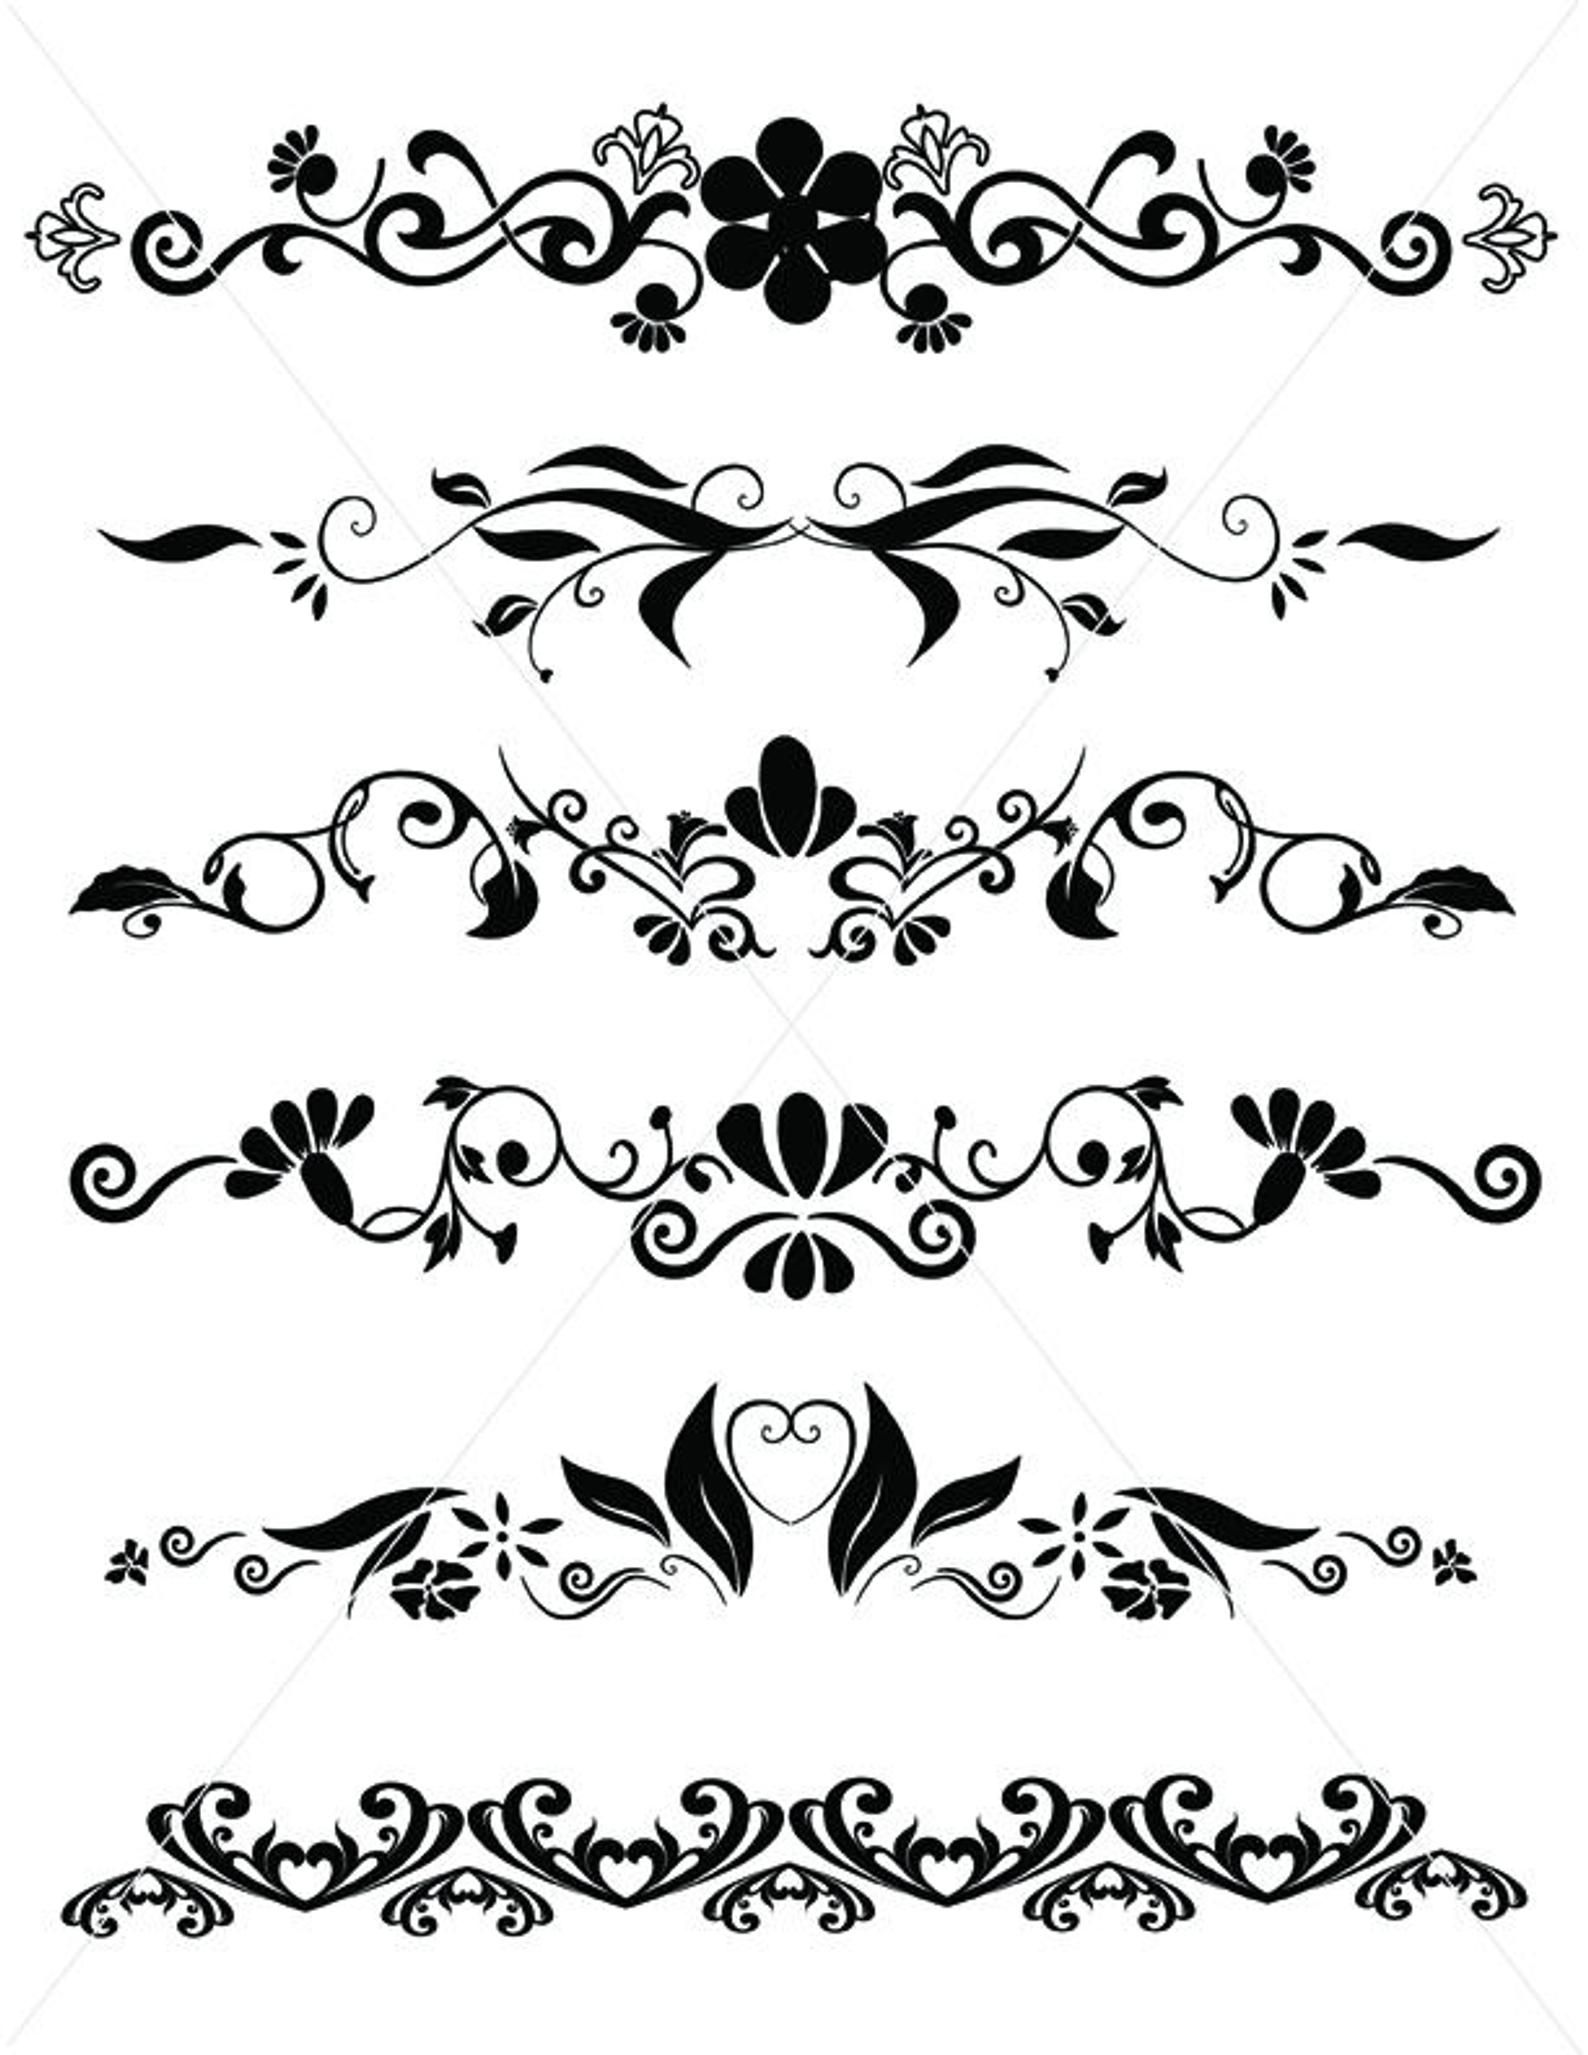 Flourishes, SVG Dividers Lines, Ornamental Borders, Scalabe.